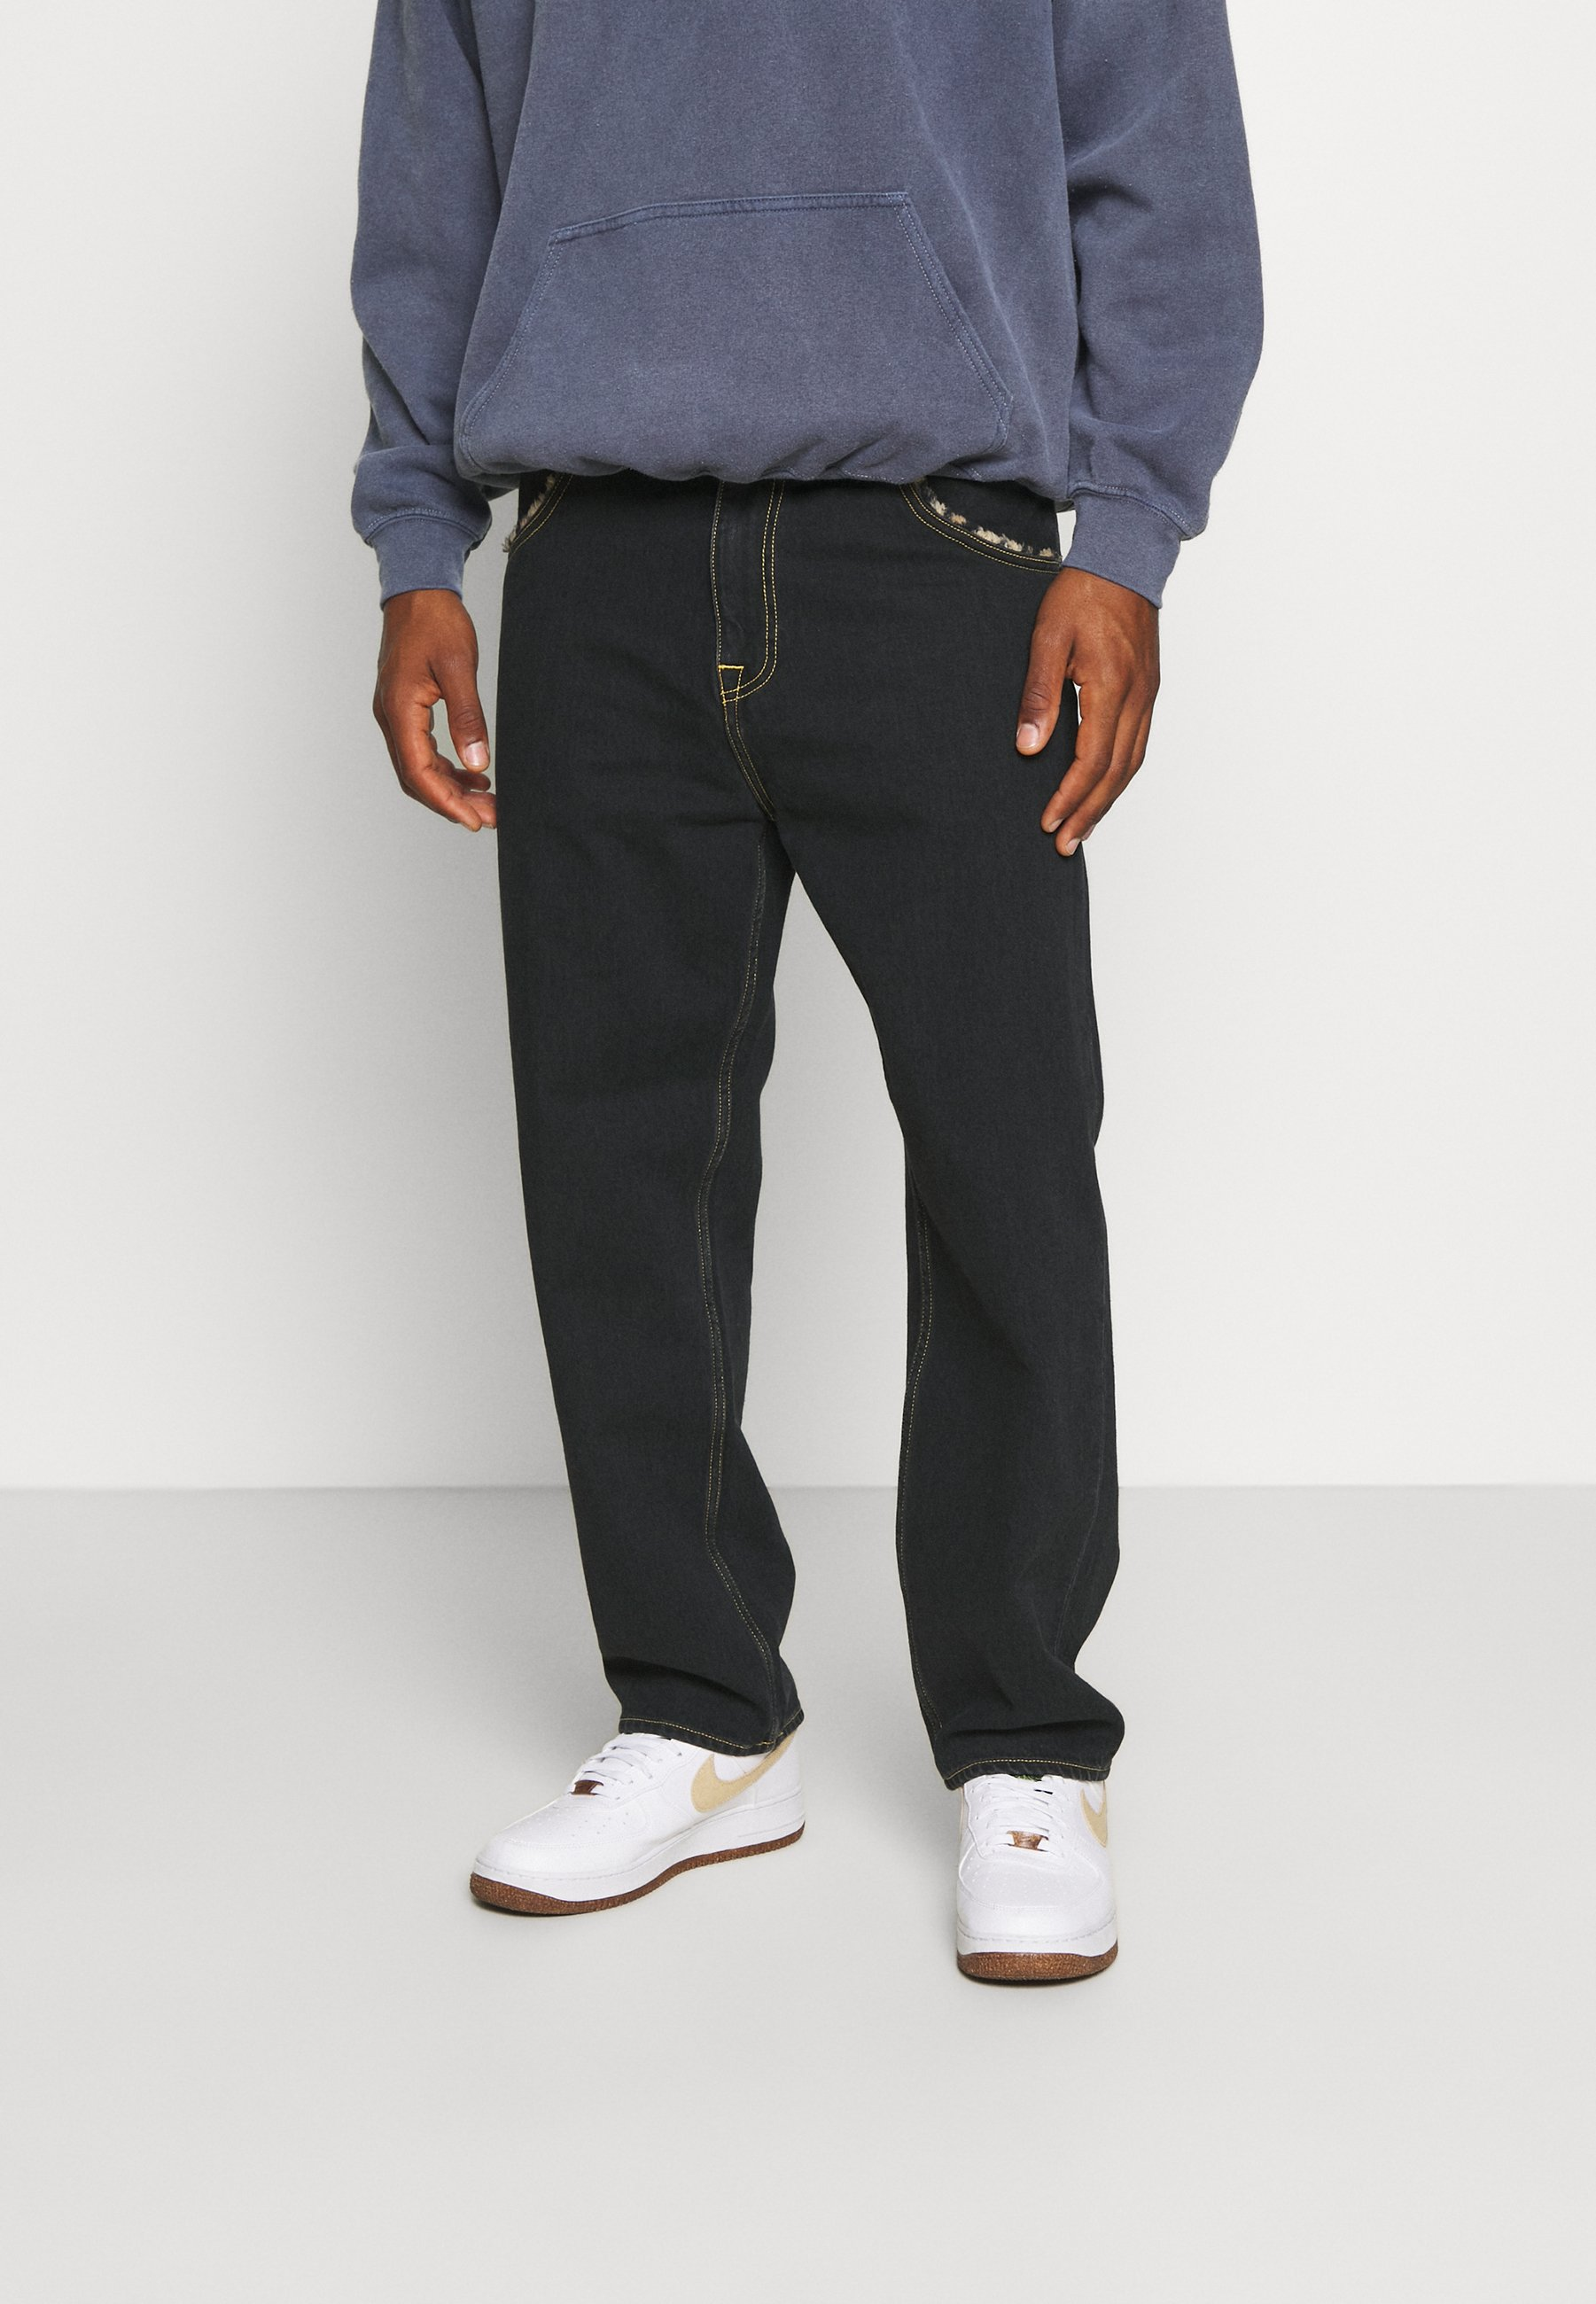 Uomo BELTED TYRELL PANT - Jeans baggy